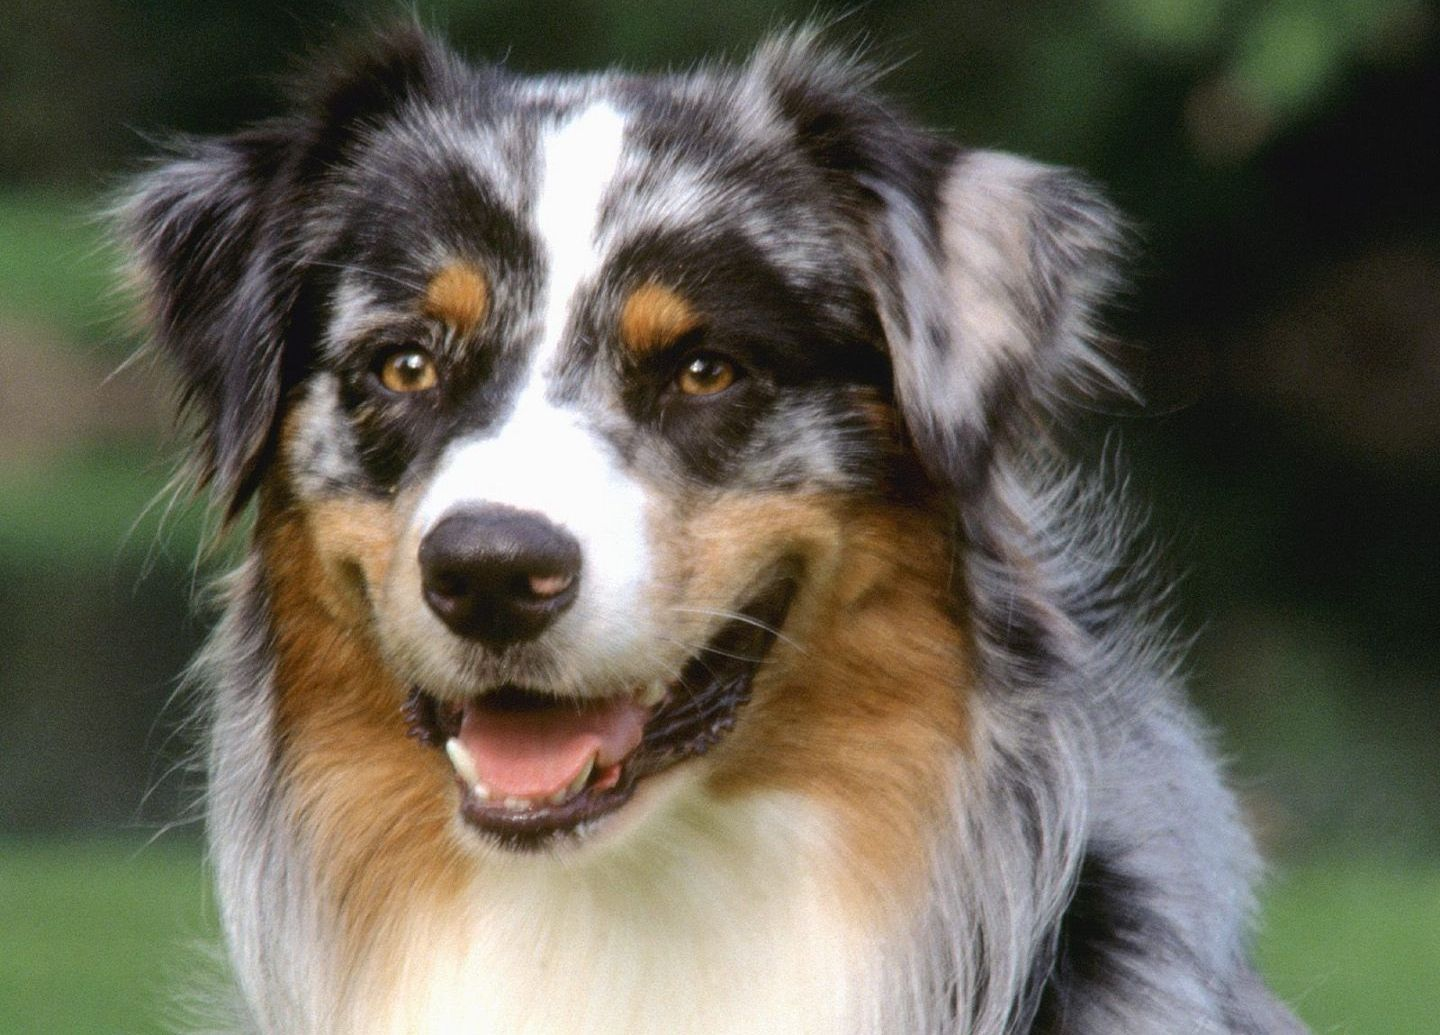 Add photos Australian Shepherd dog face in your blog: